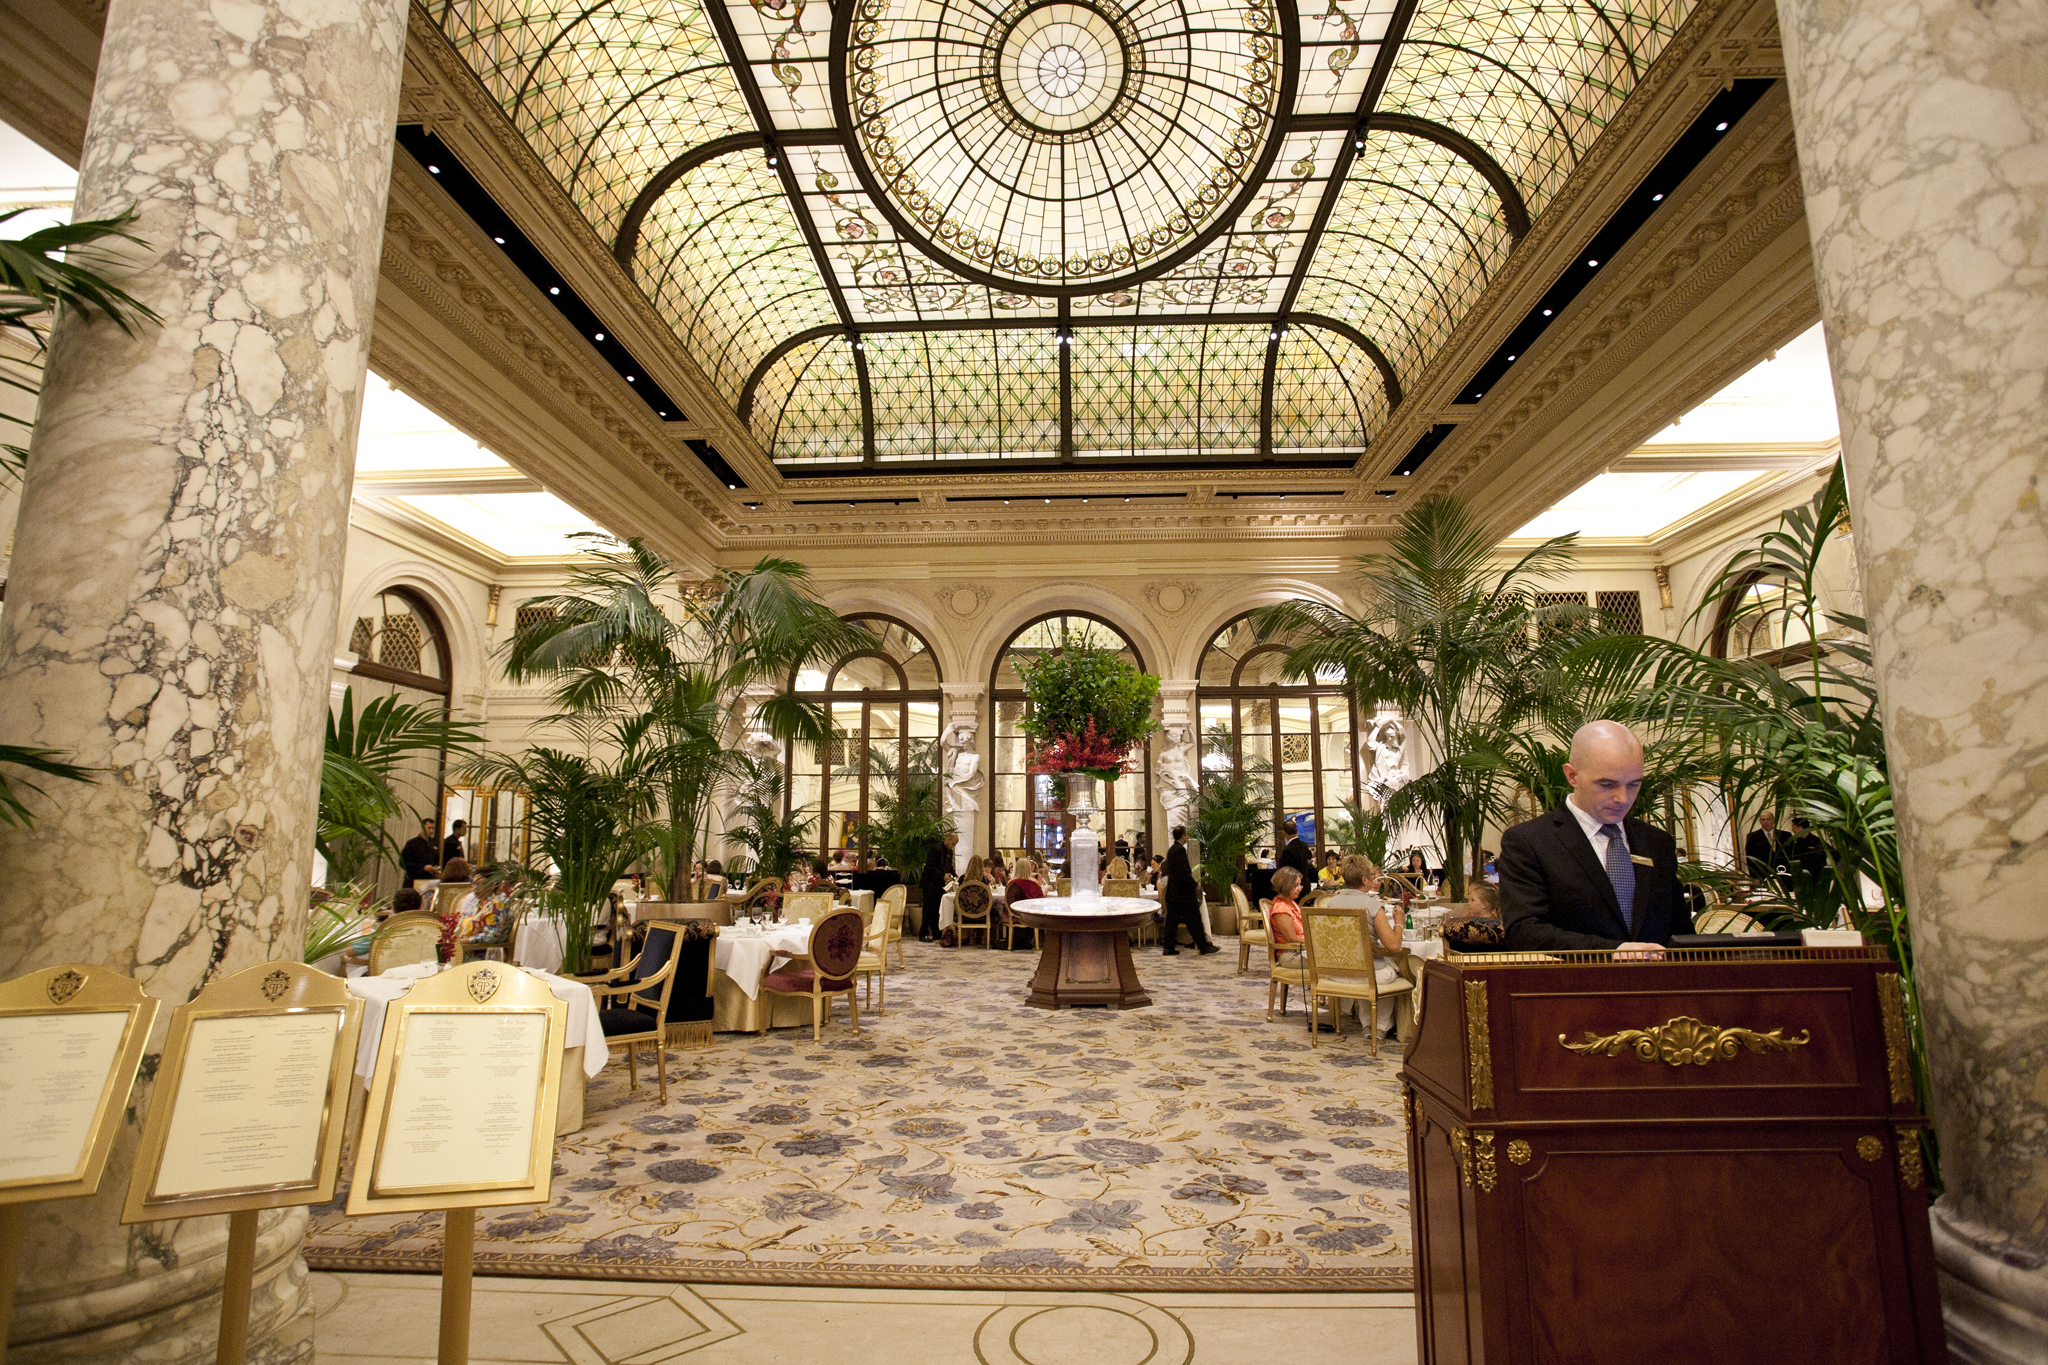 The Palm Court at The Plaza